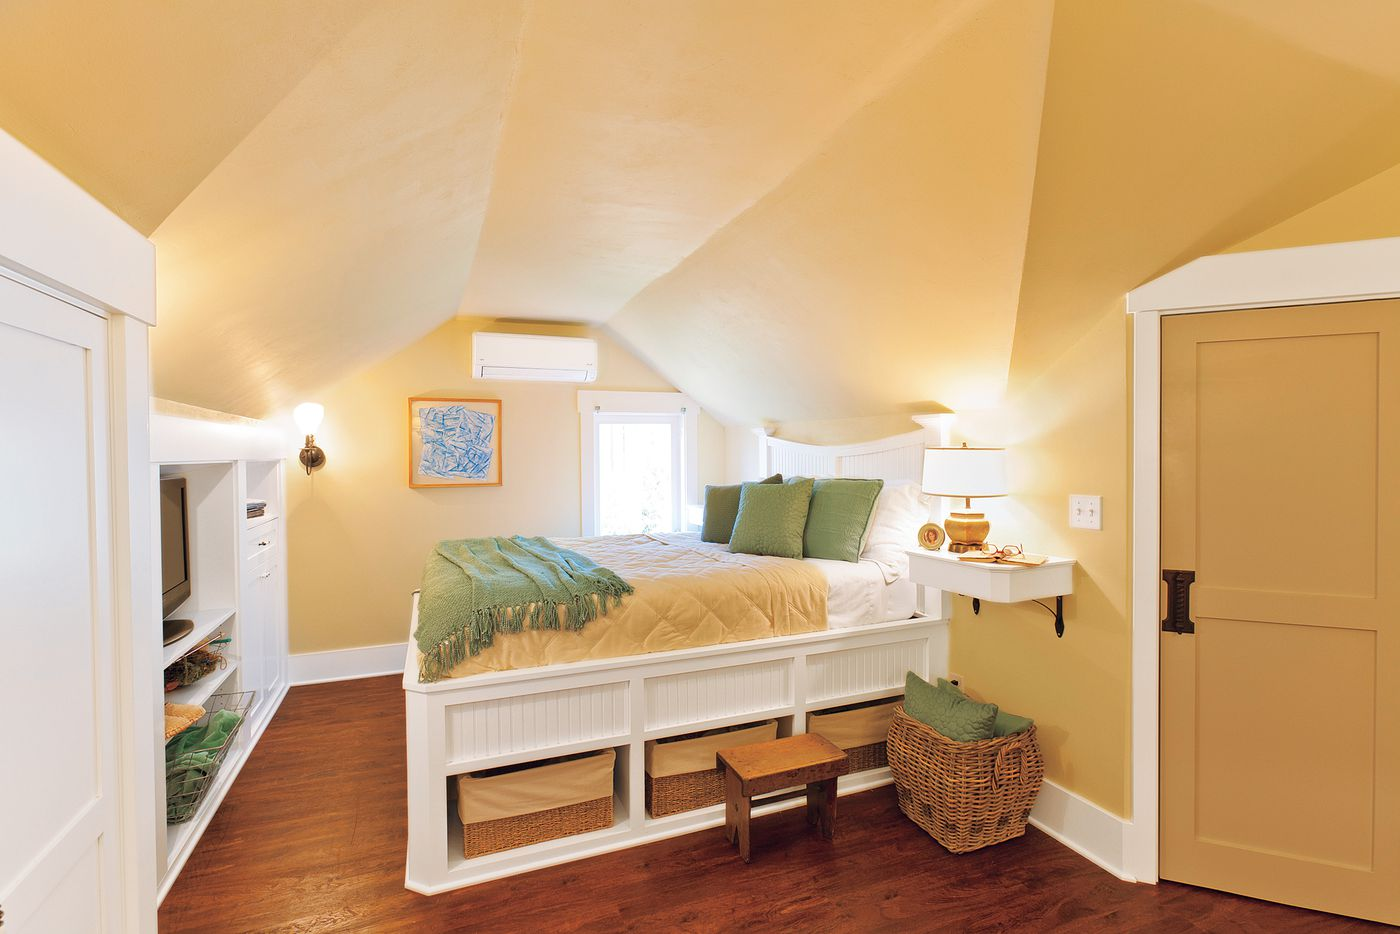 18 Ways To Turn Unused Space Into The Rooms You Need This Old House